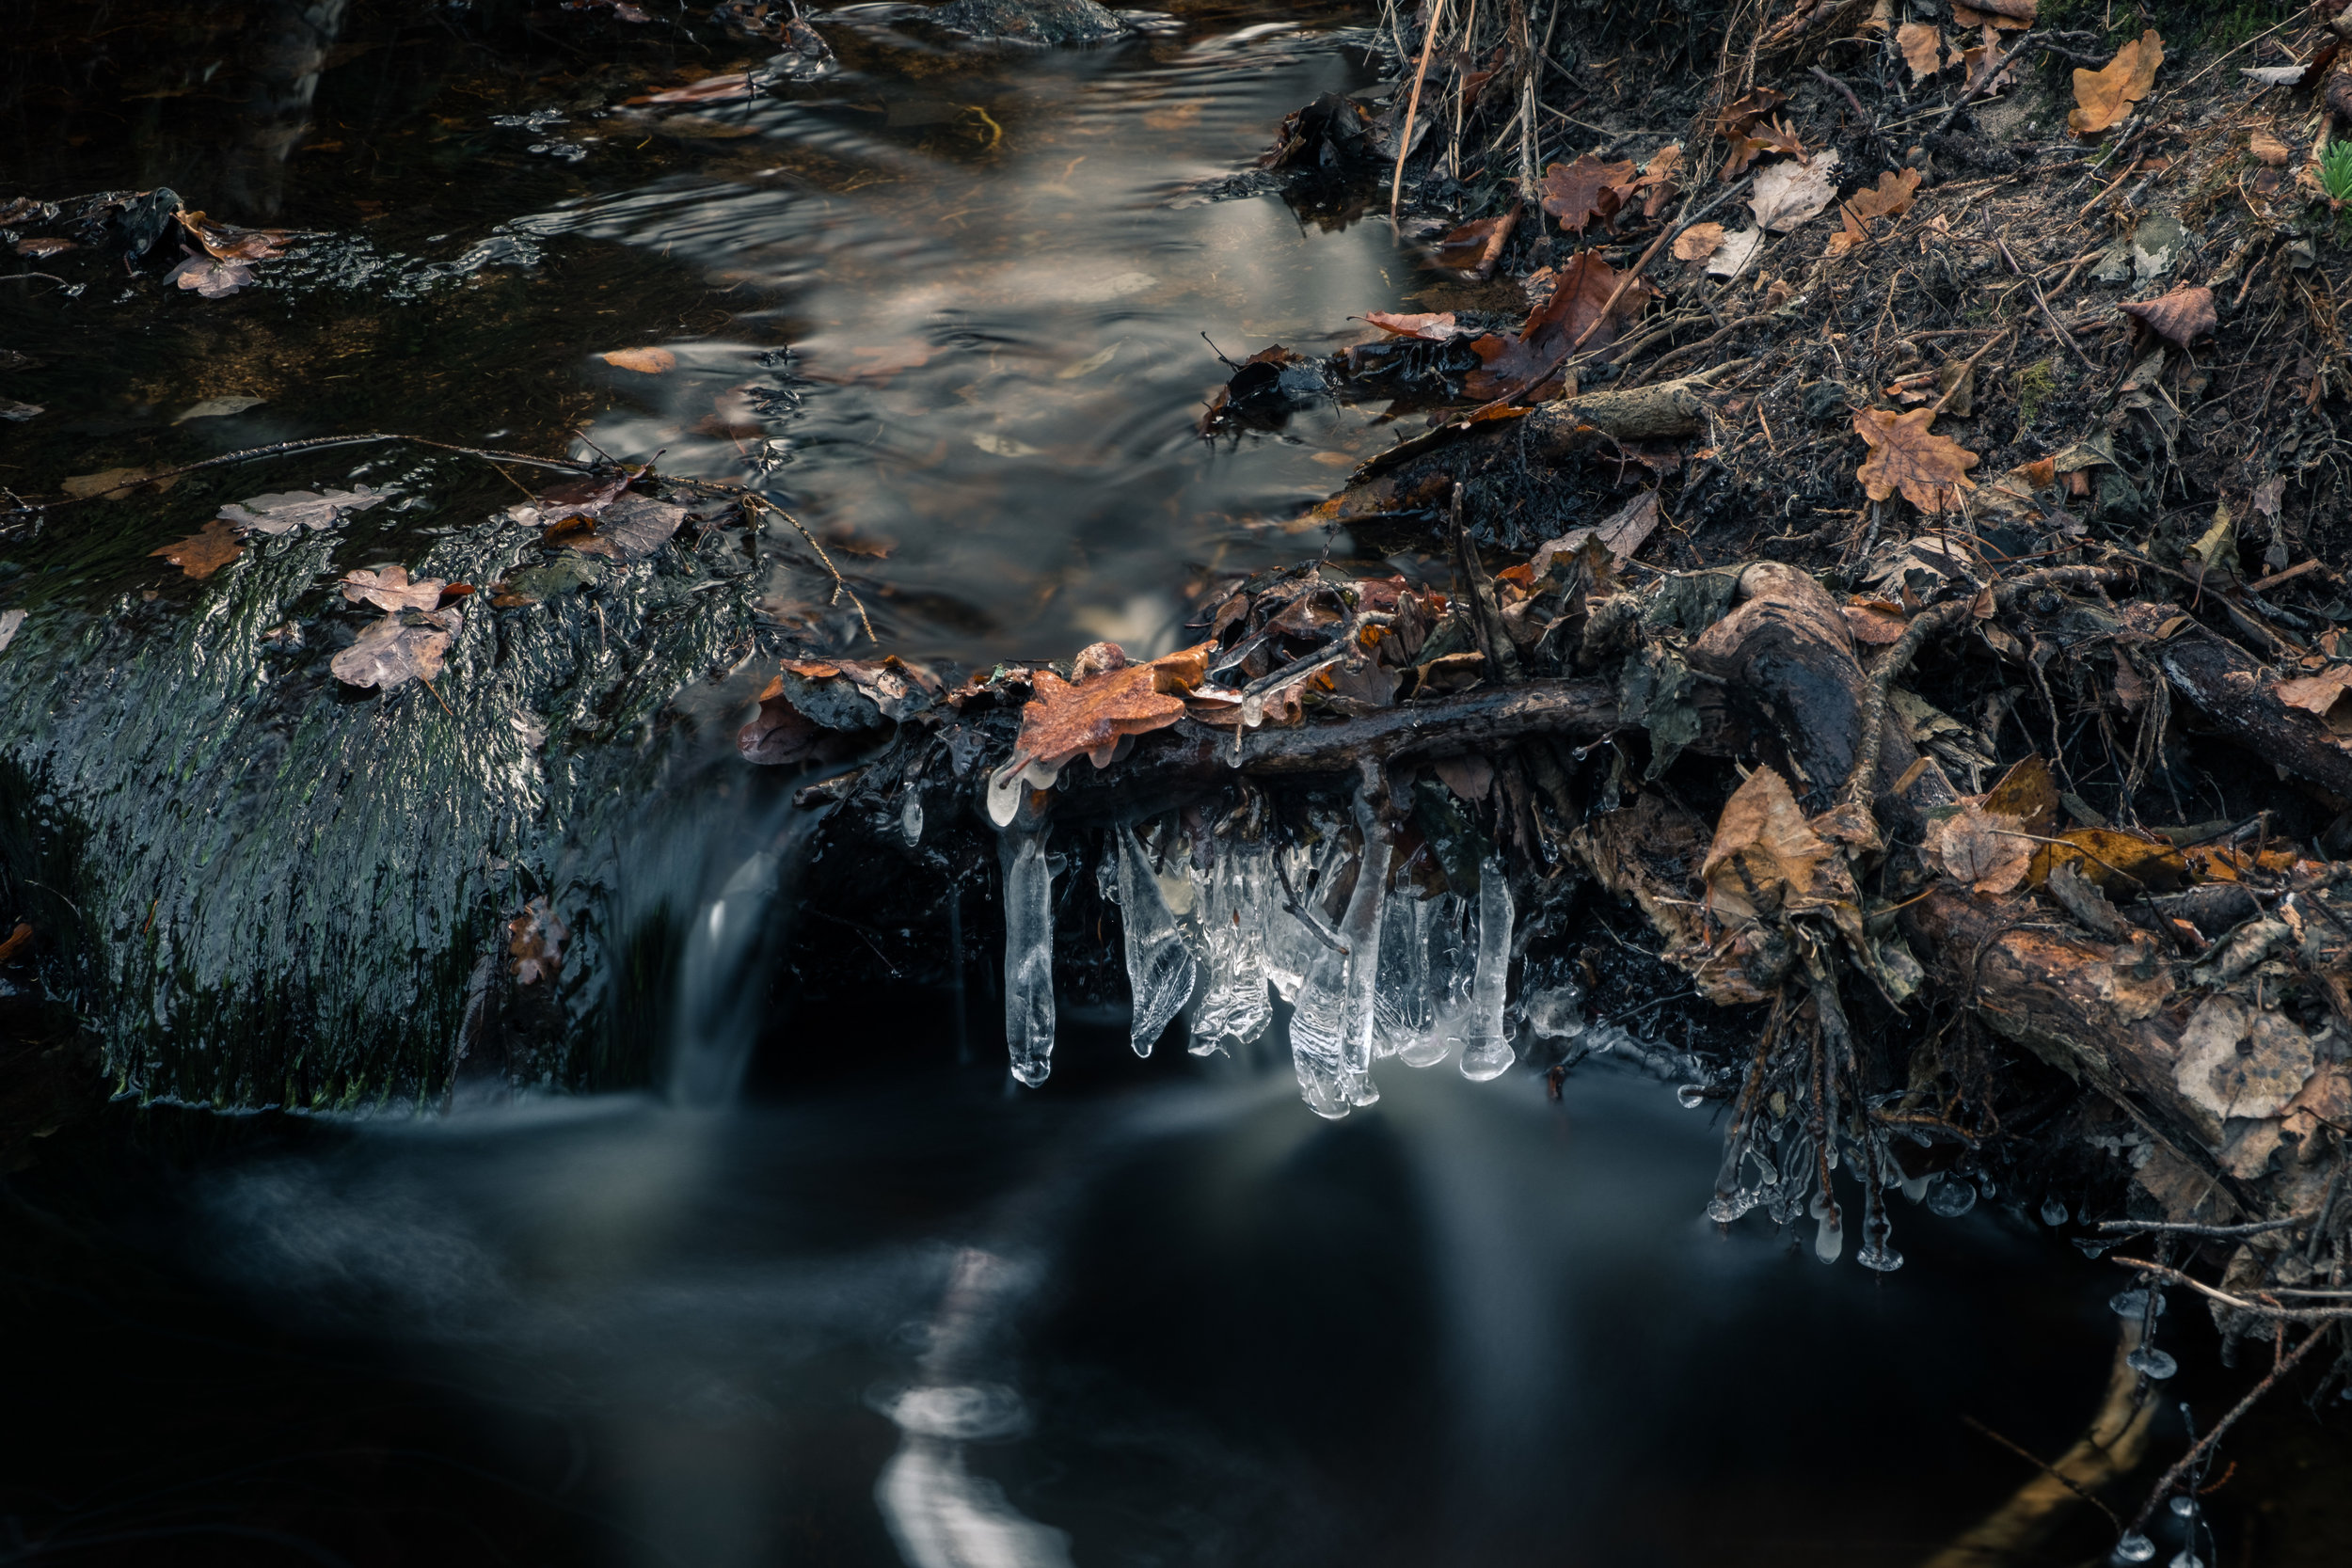 Some ice sickles in the stream close to Ilemyr. Taken with the X-T2 and the 18-55